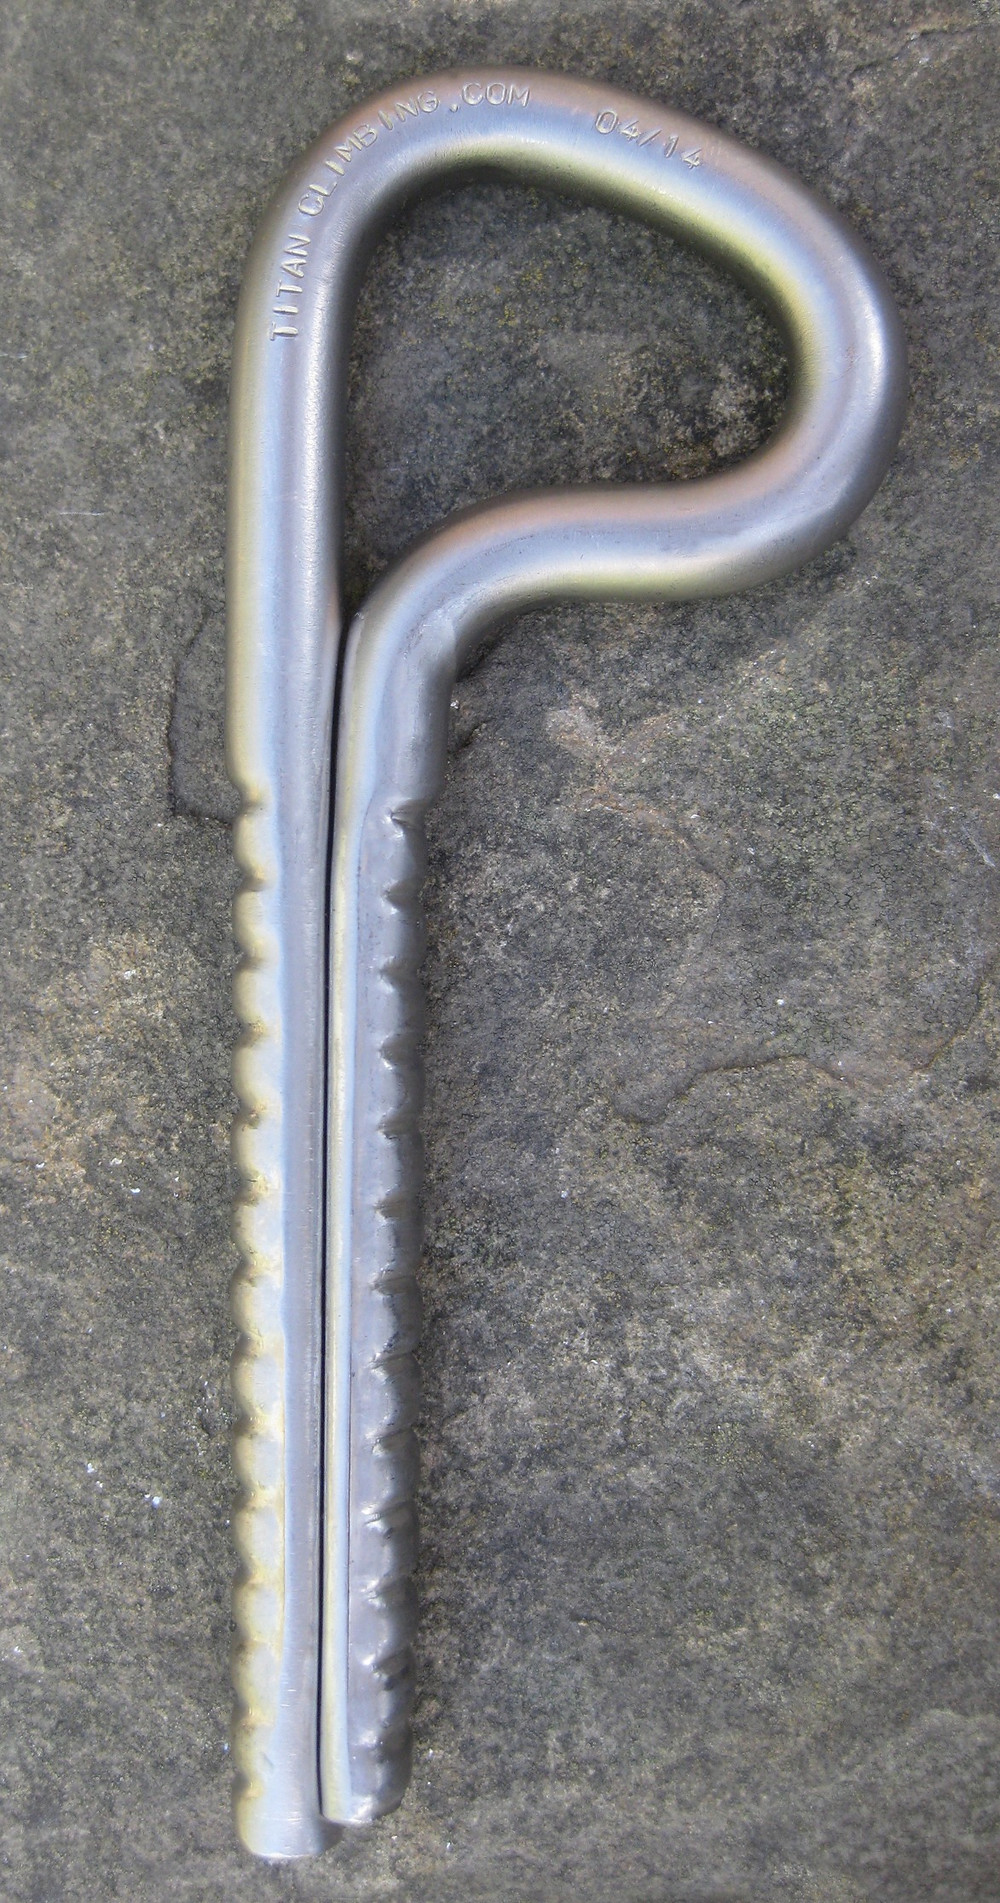 HowNOTtoHighline Bolting Bible Book of Anatomy Titan Climbing Titanium Glue in Bolt for Climbing and Highline Anchors